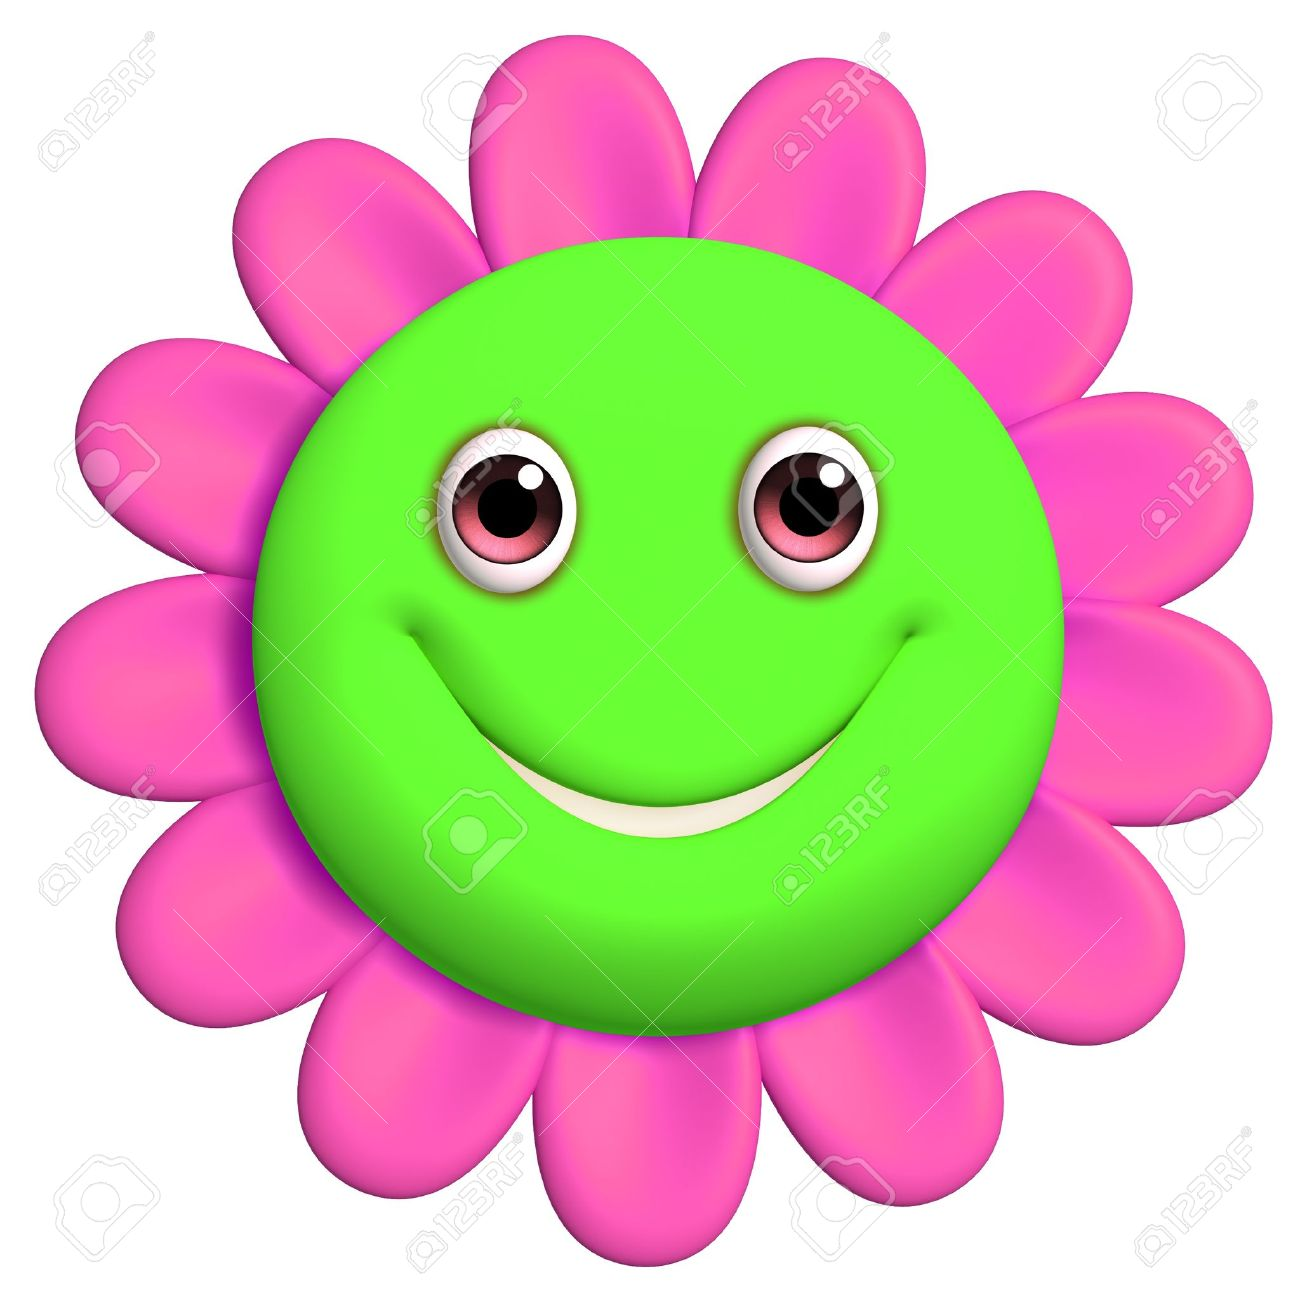 Flower smiley face clipart freeuse stock Best Smiley Face Flower #23609 - Clipartion.com freeuse stock